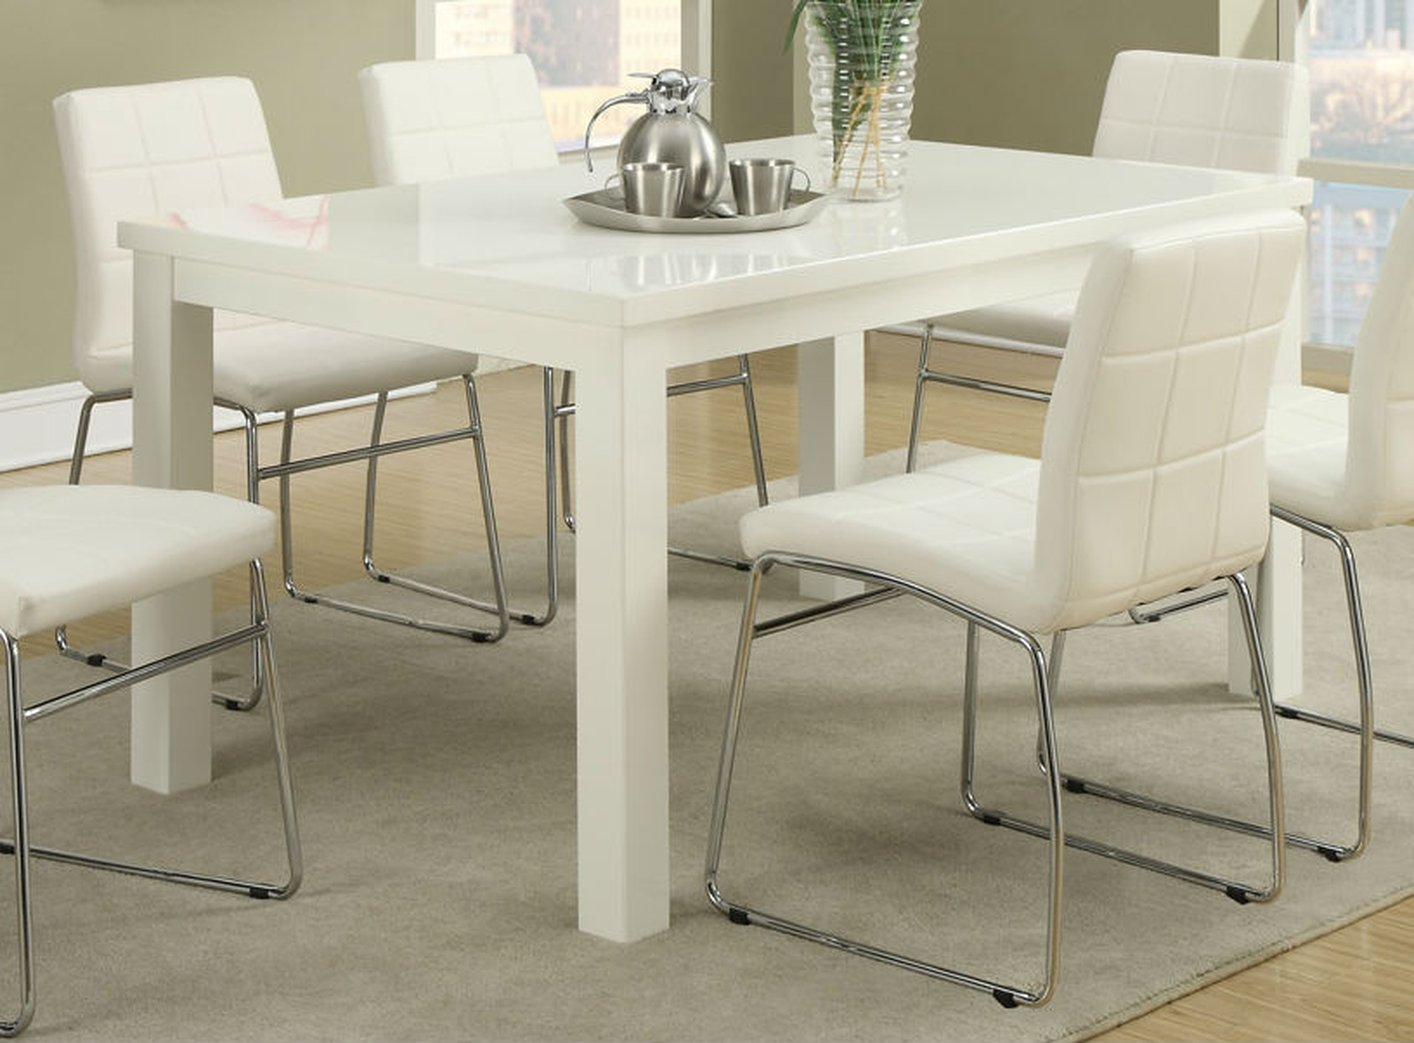 Poundex f2407 white wood dining table steal a sofa for White and wood dining table and chairs